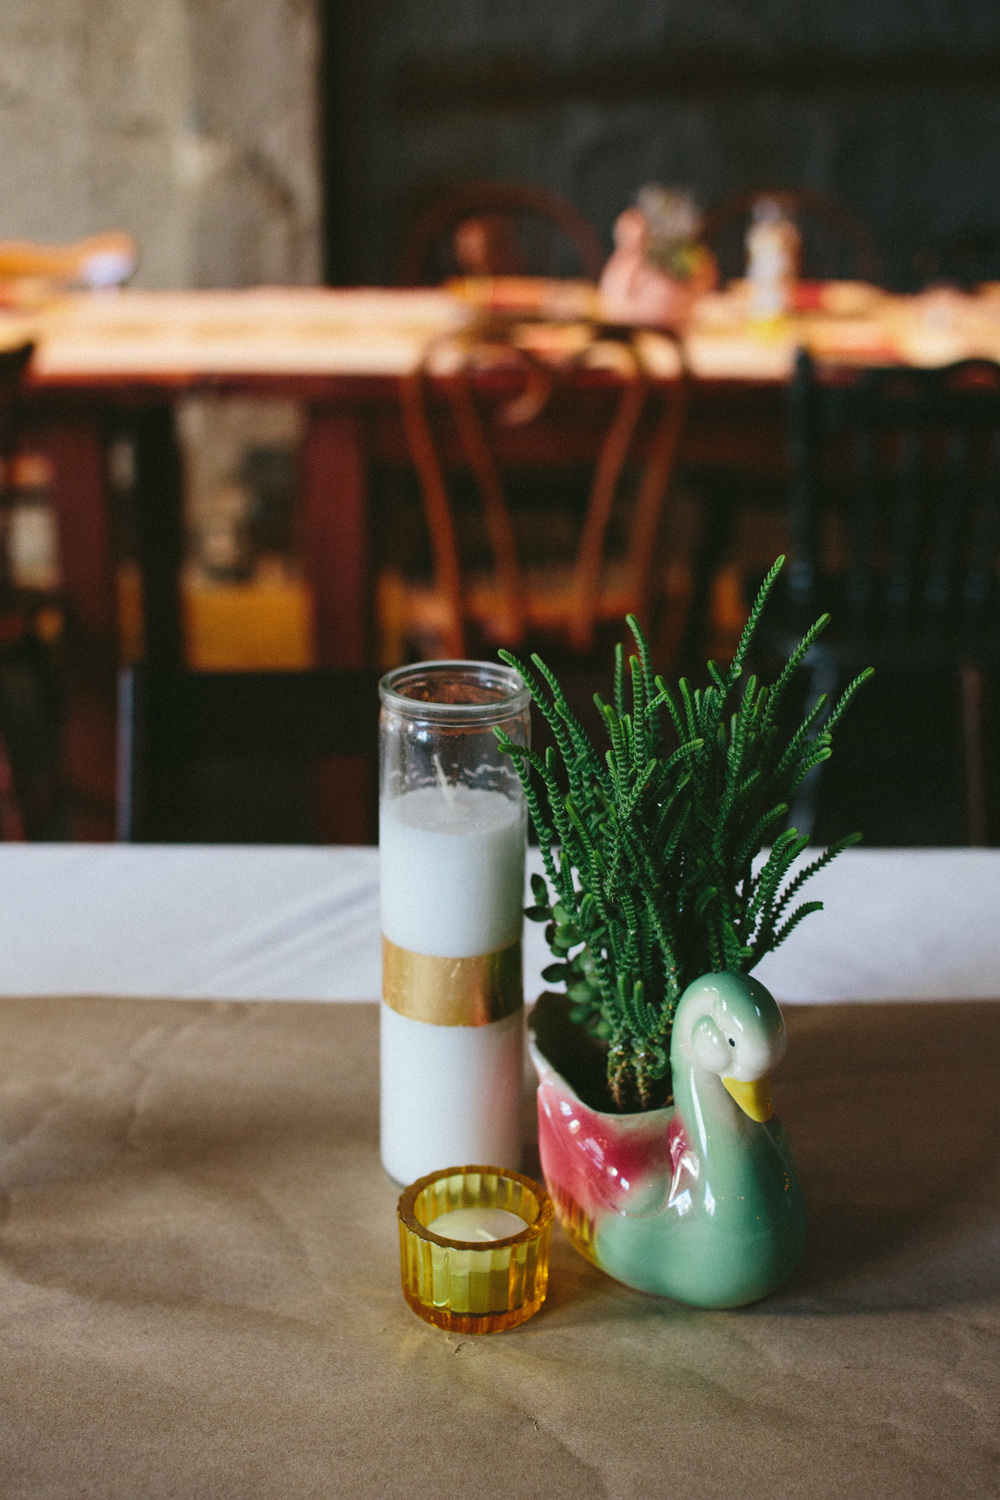 Paige-Newton-Photography-Wedding-Details-Cute-Tablescape.jpg